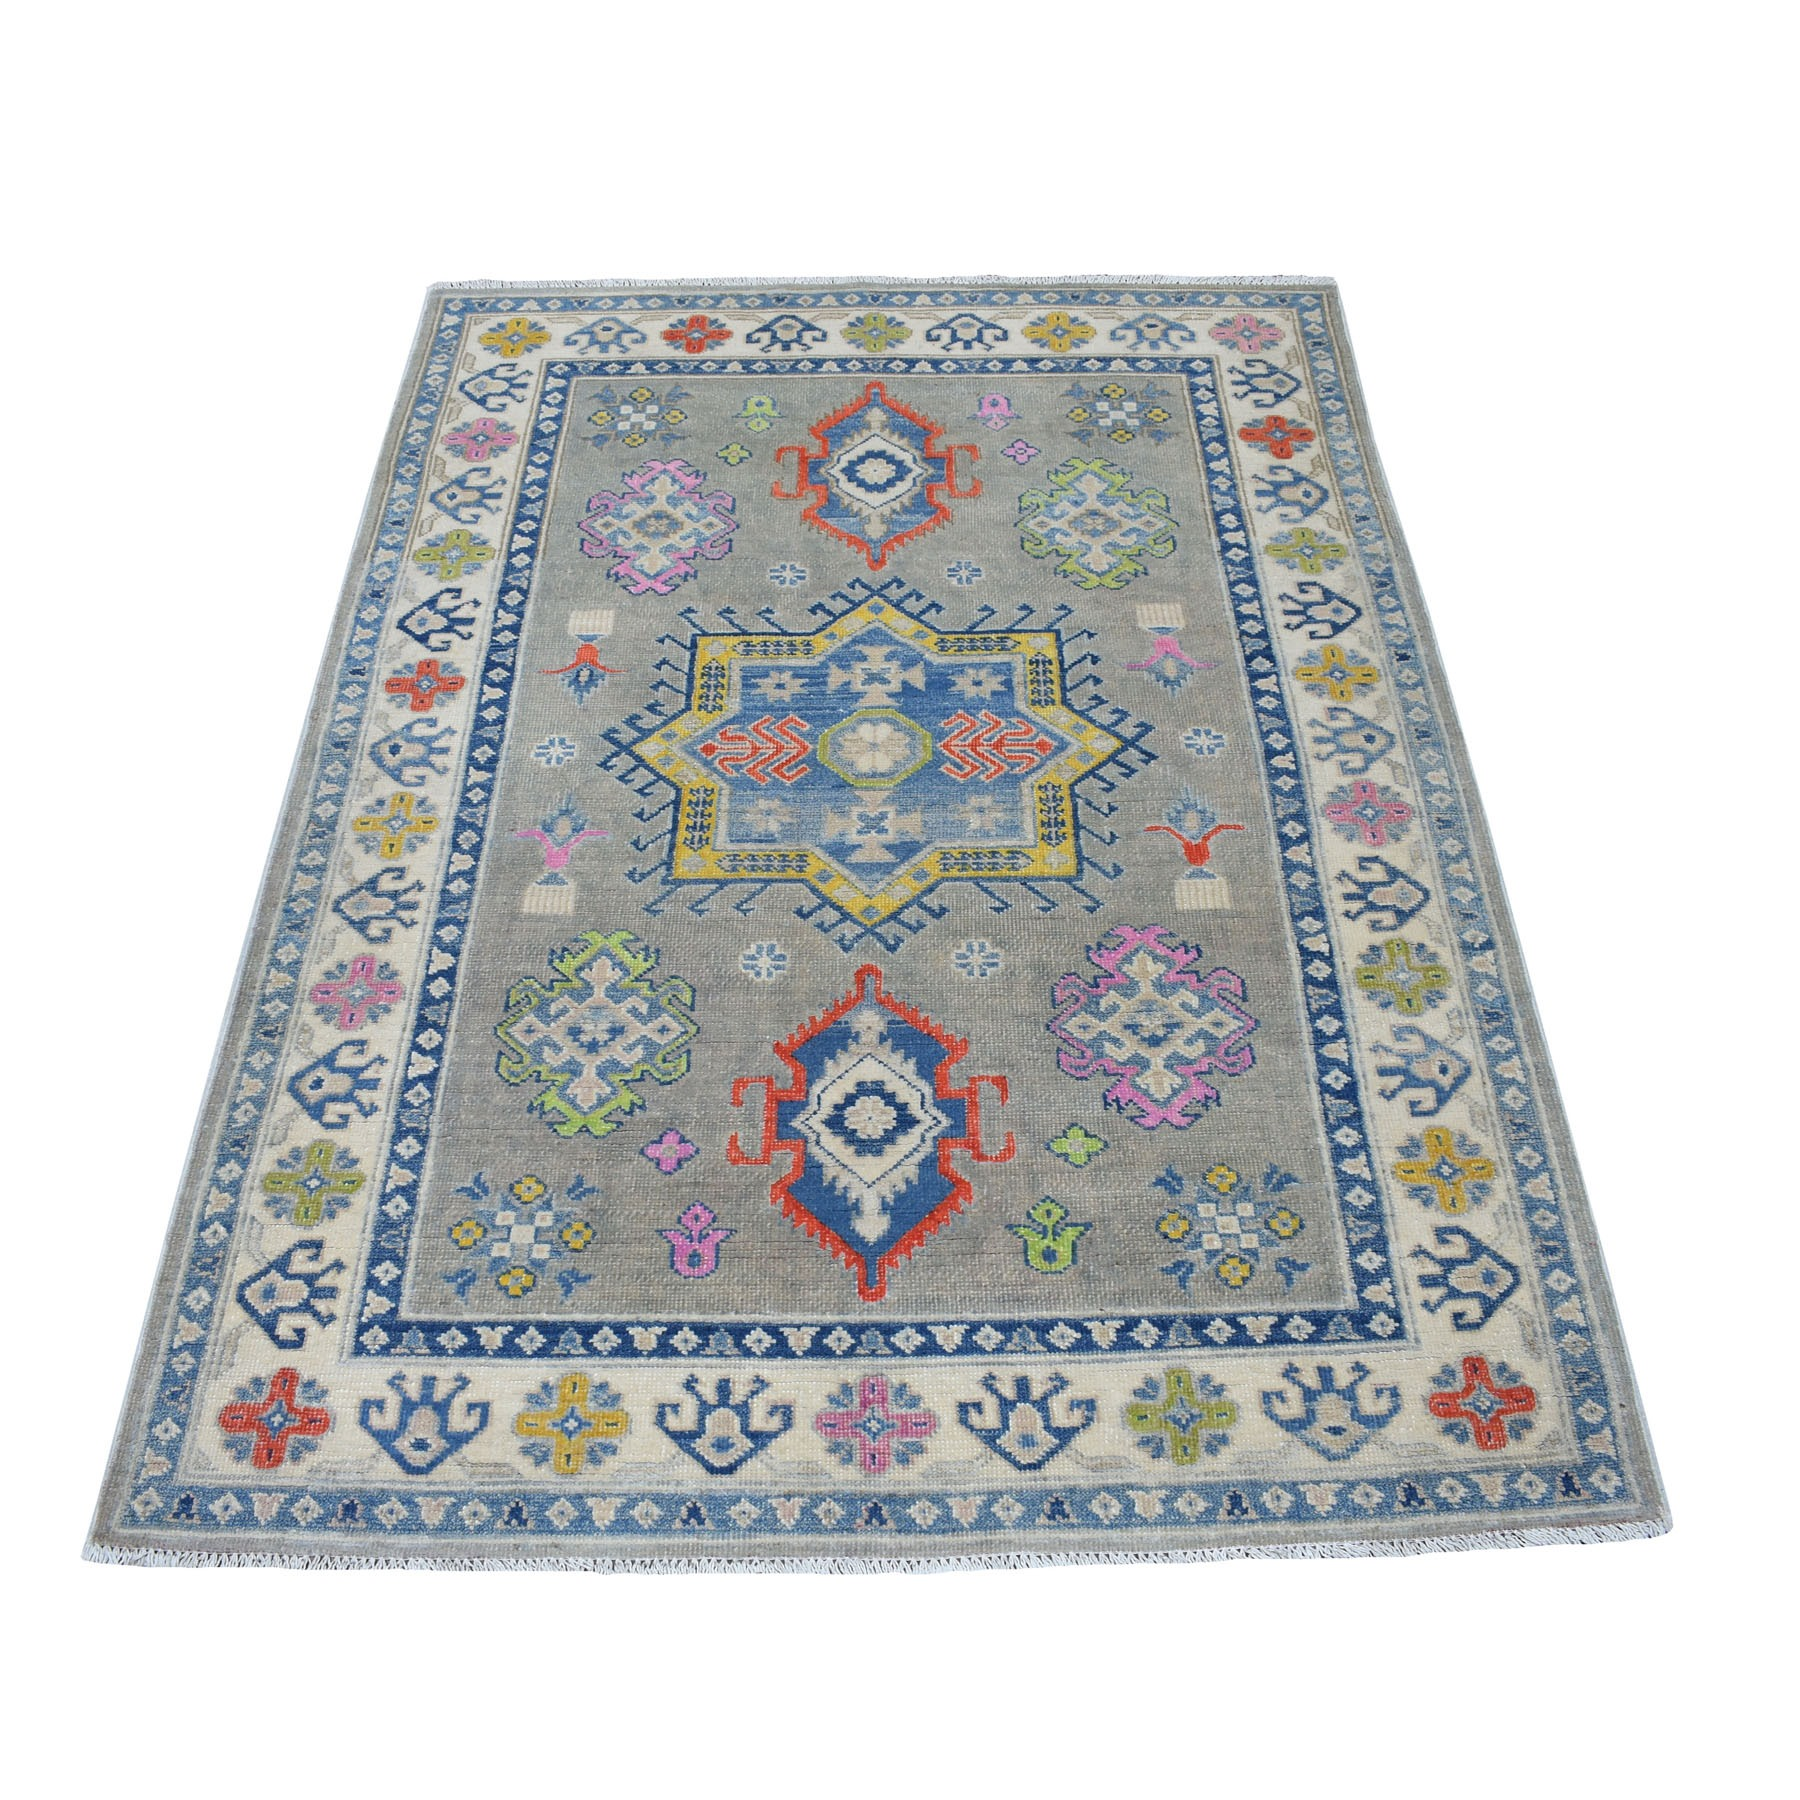 "4'x5'10"" Colorful Gray Fusion Kazak Pure Wool Geometric Design Hand Woven Oriental Rug"